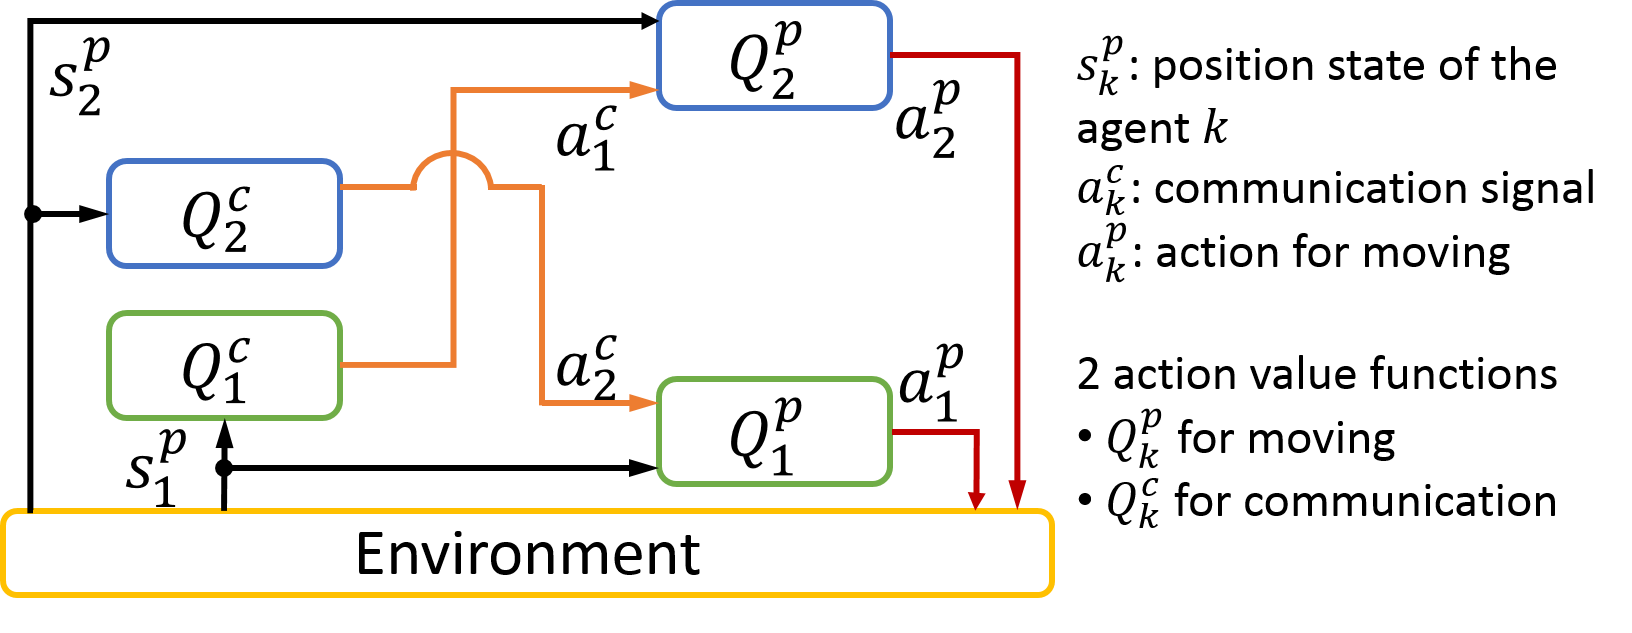 Multiagen reinforcement learning framework